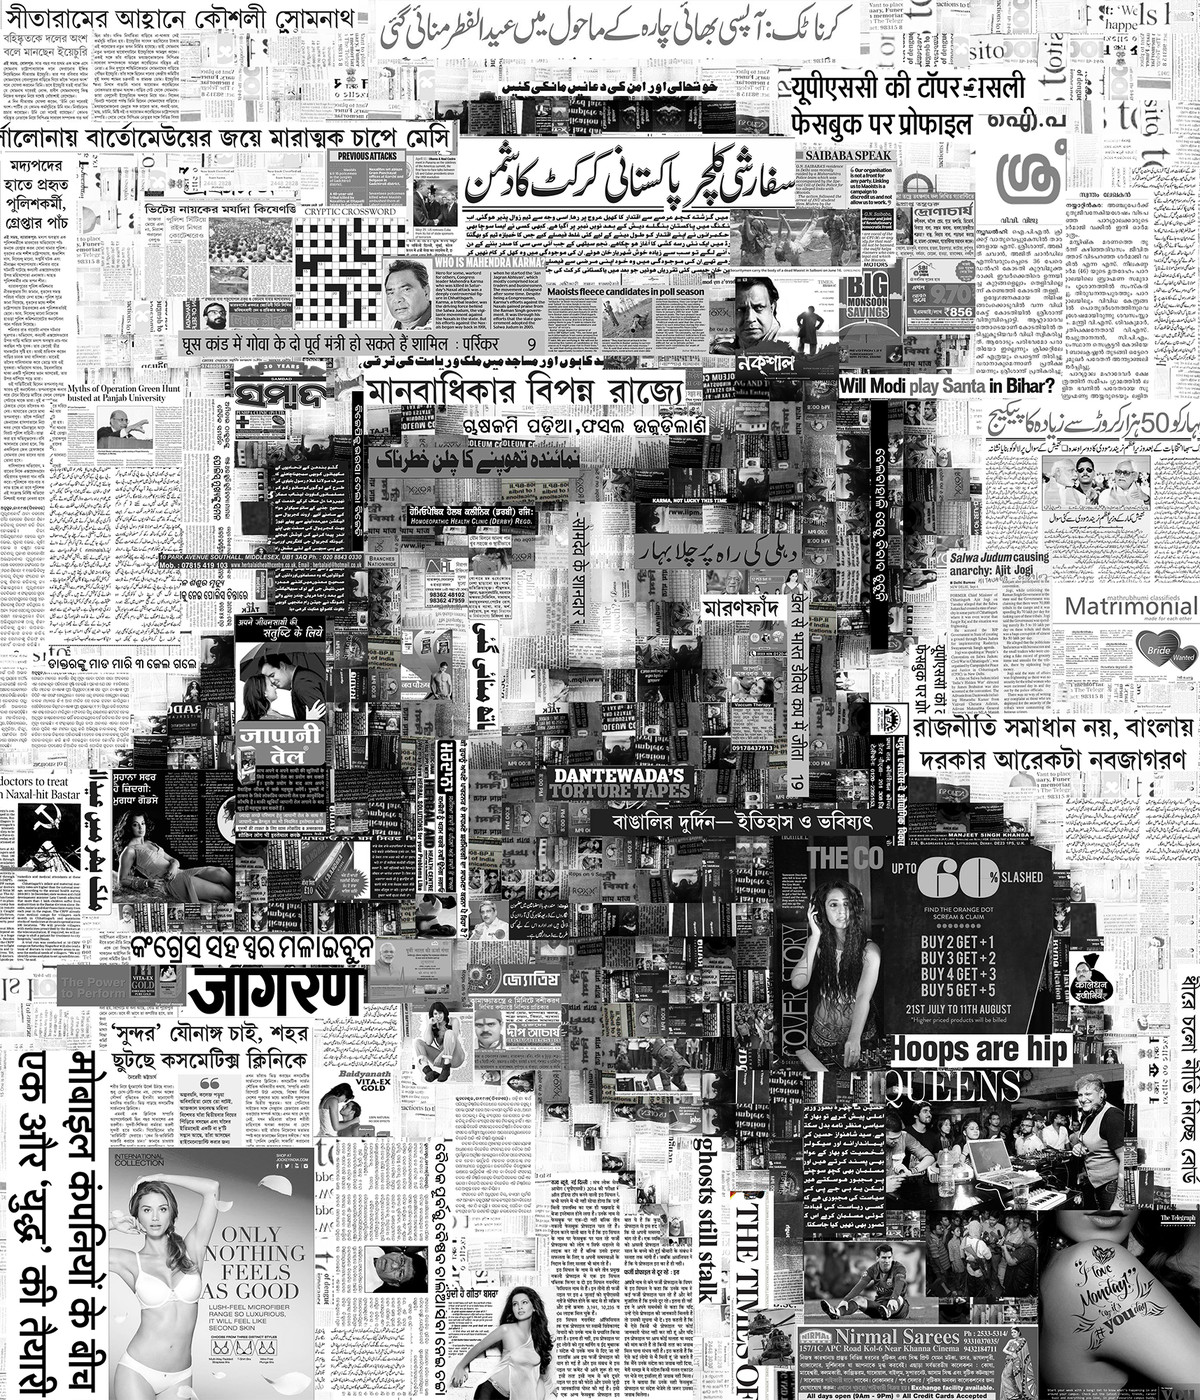 You are not in the News - 02 by Saptarshi Das, Conceptual Digital Art, Digital Print on Paper, Gray color